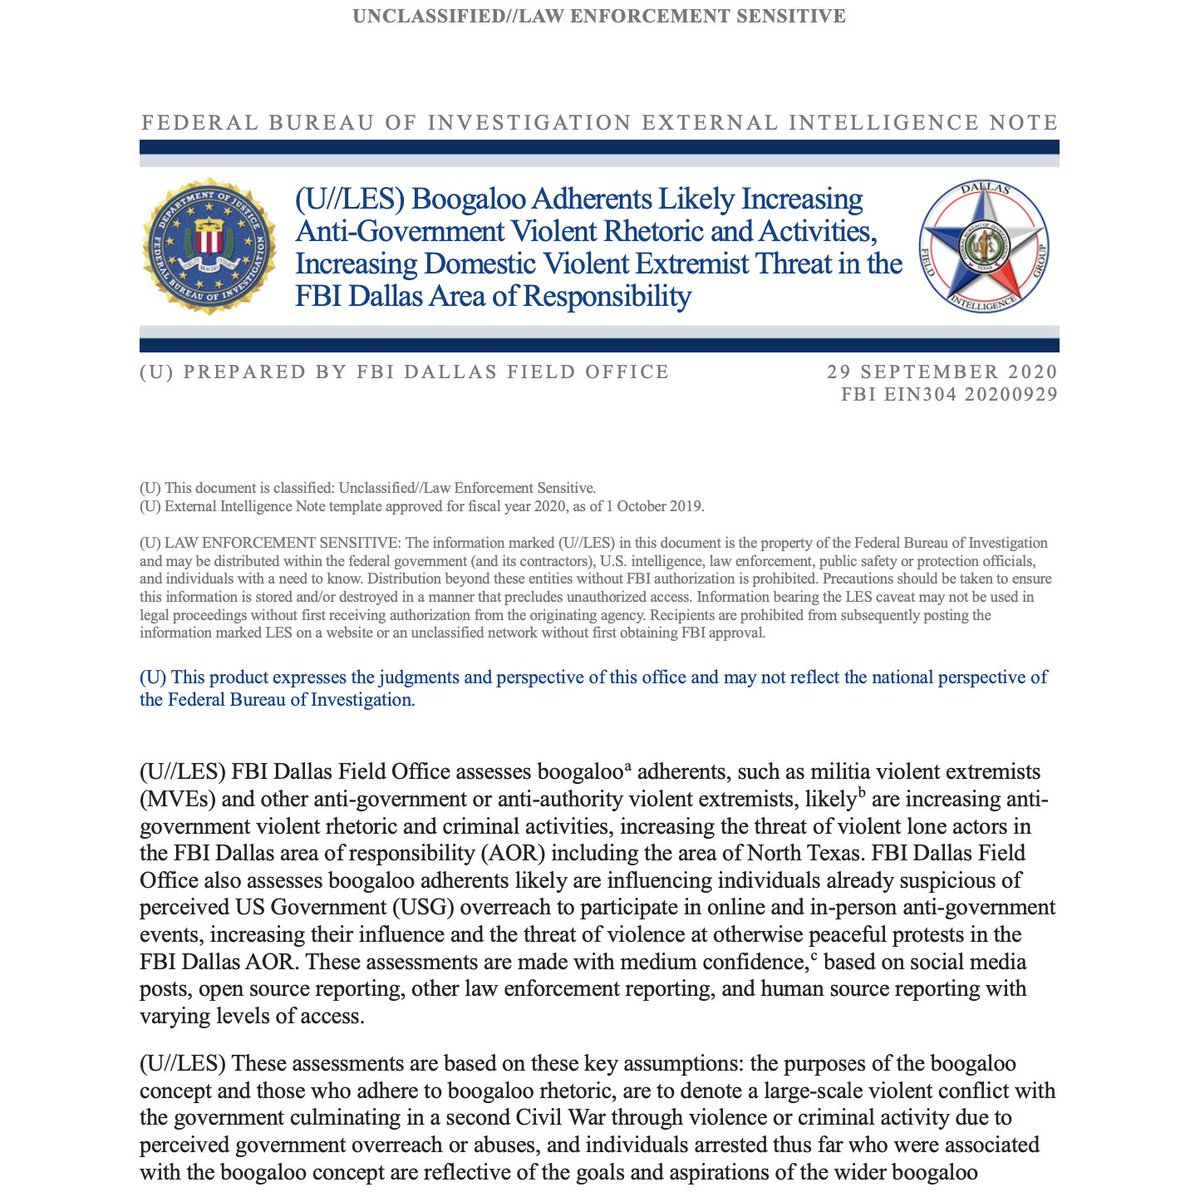 Yesterday as Trump refused to condemn far-right violence, the FBI quietly issued a warning about the threat of far-right extremists, per intel report leaked to me. It identifies the period between presidential election and inauguration as a flashpoint thenation.com/article/politi…